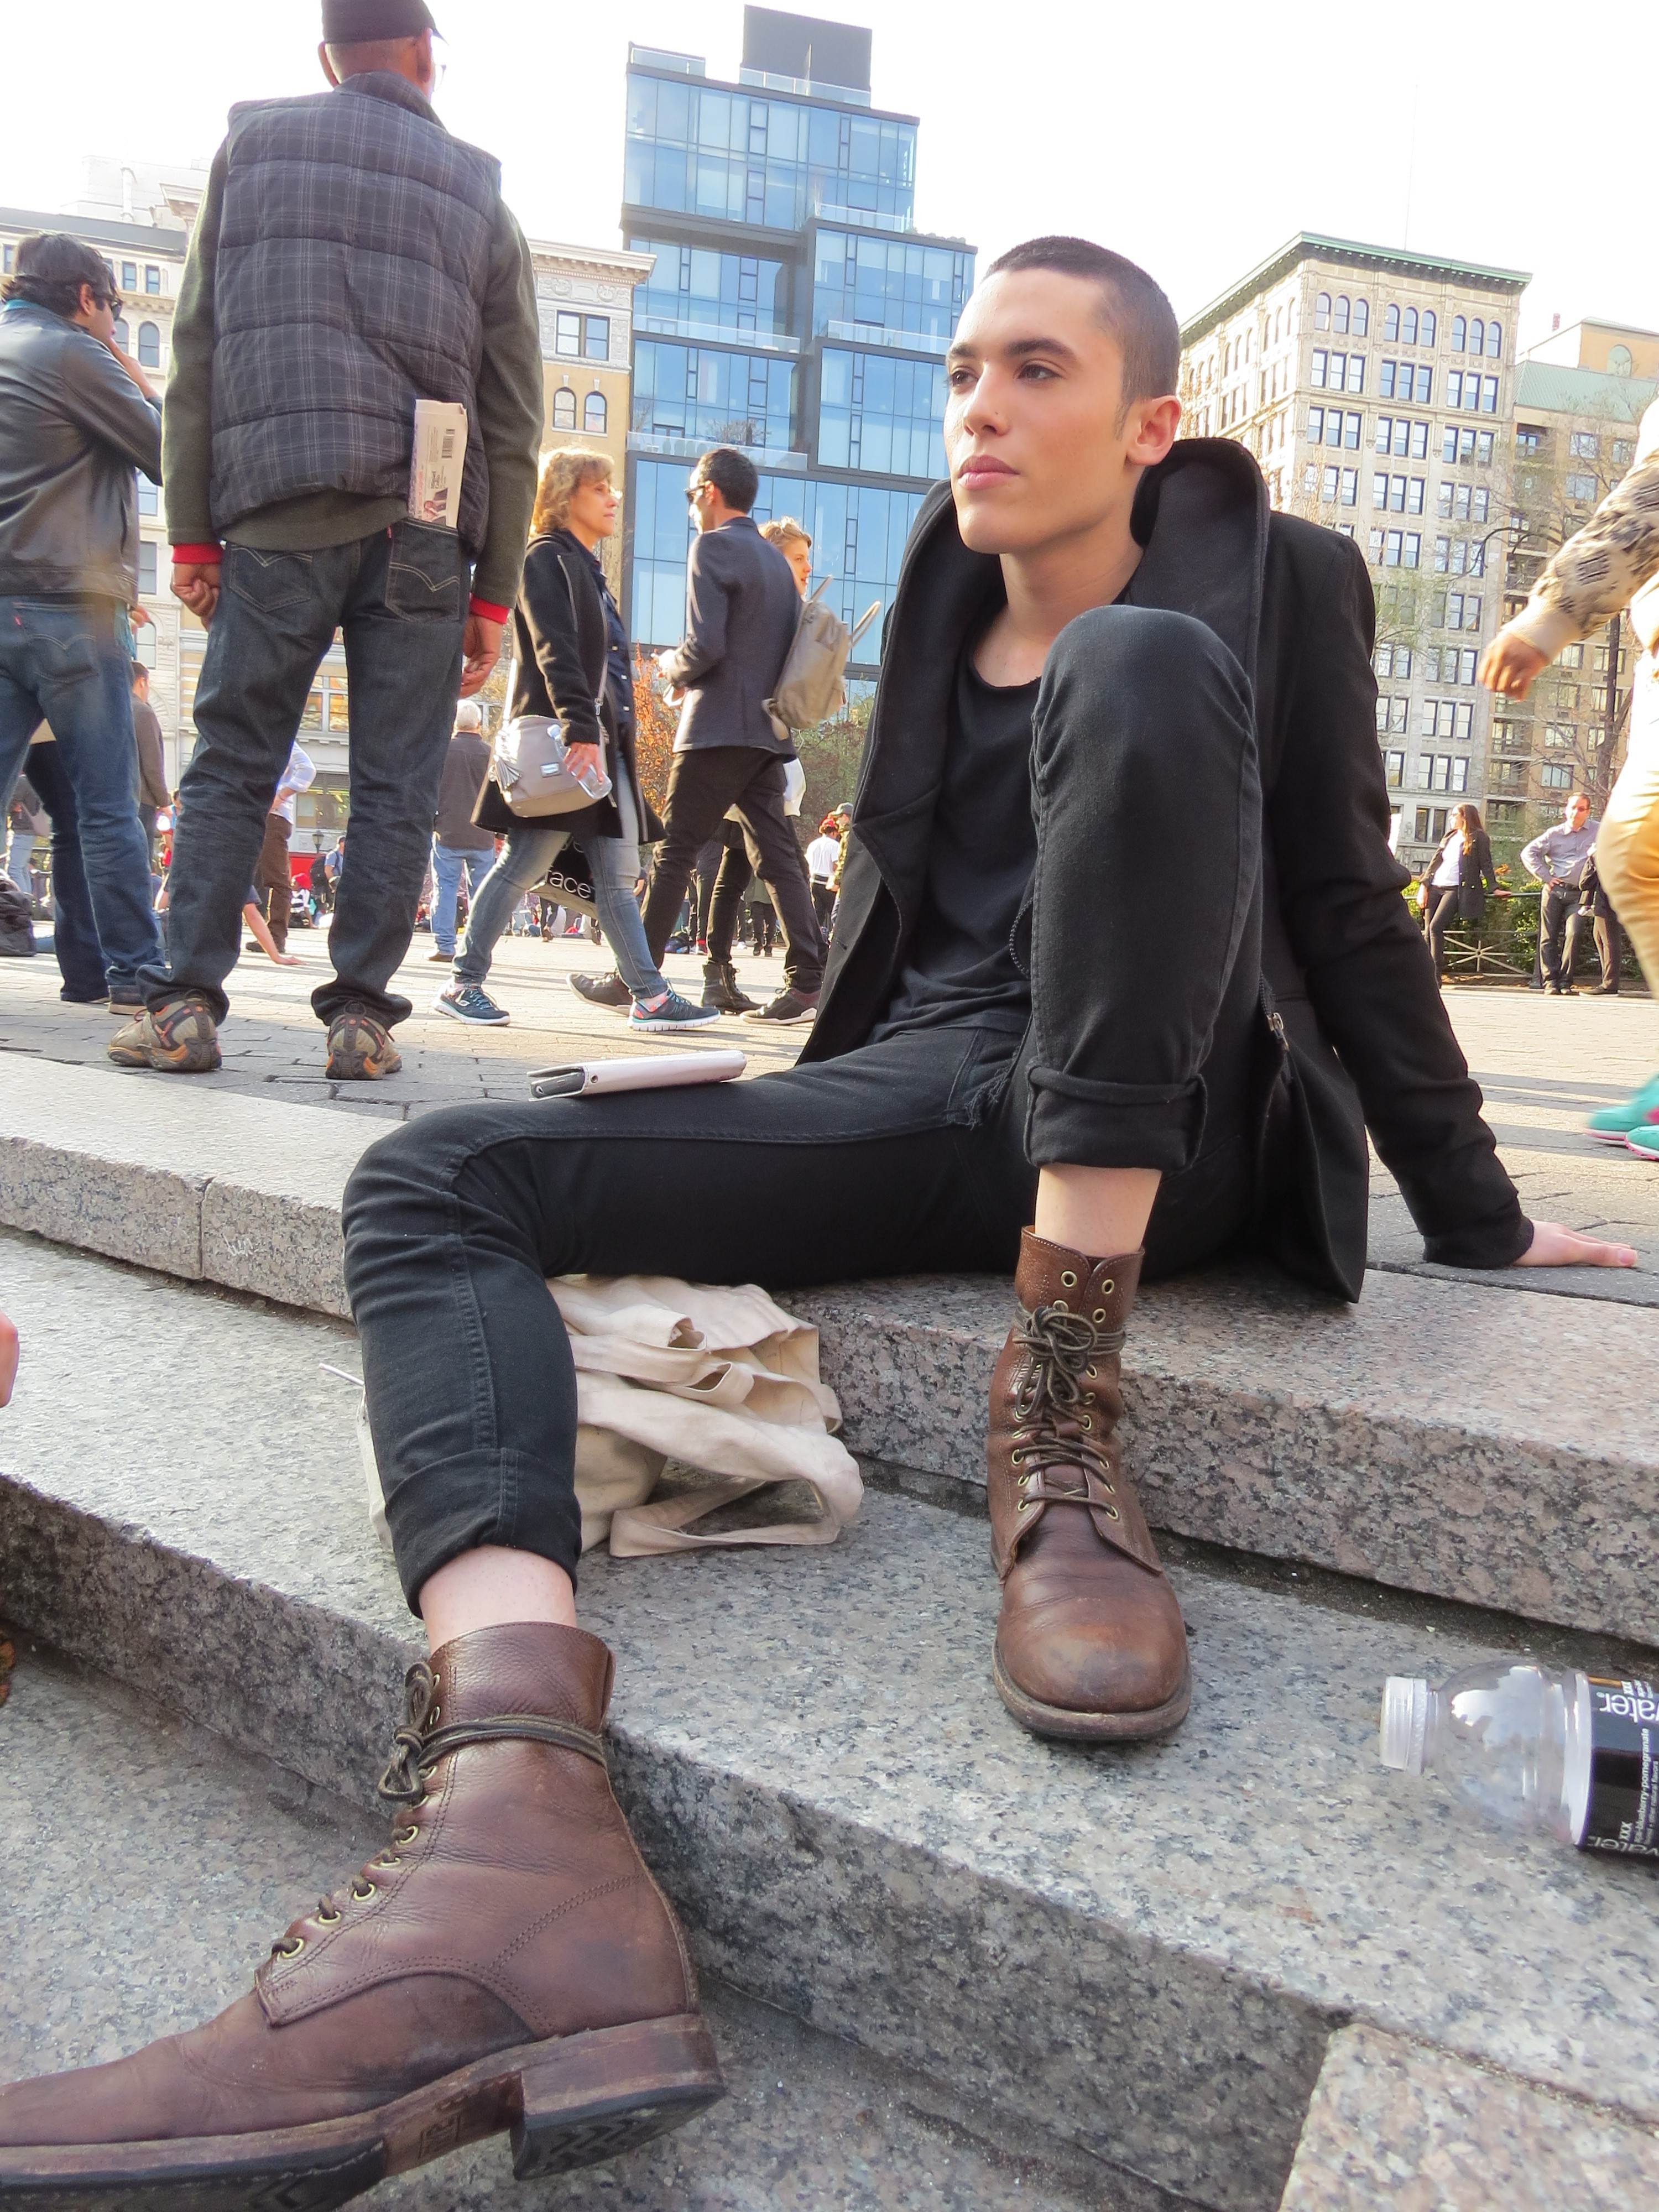 pretty bald boy perspective from shoe